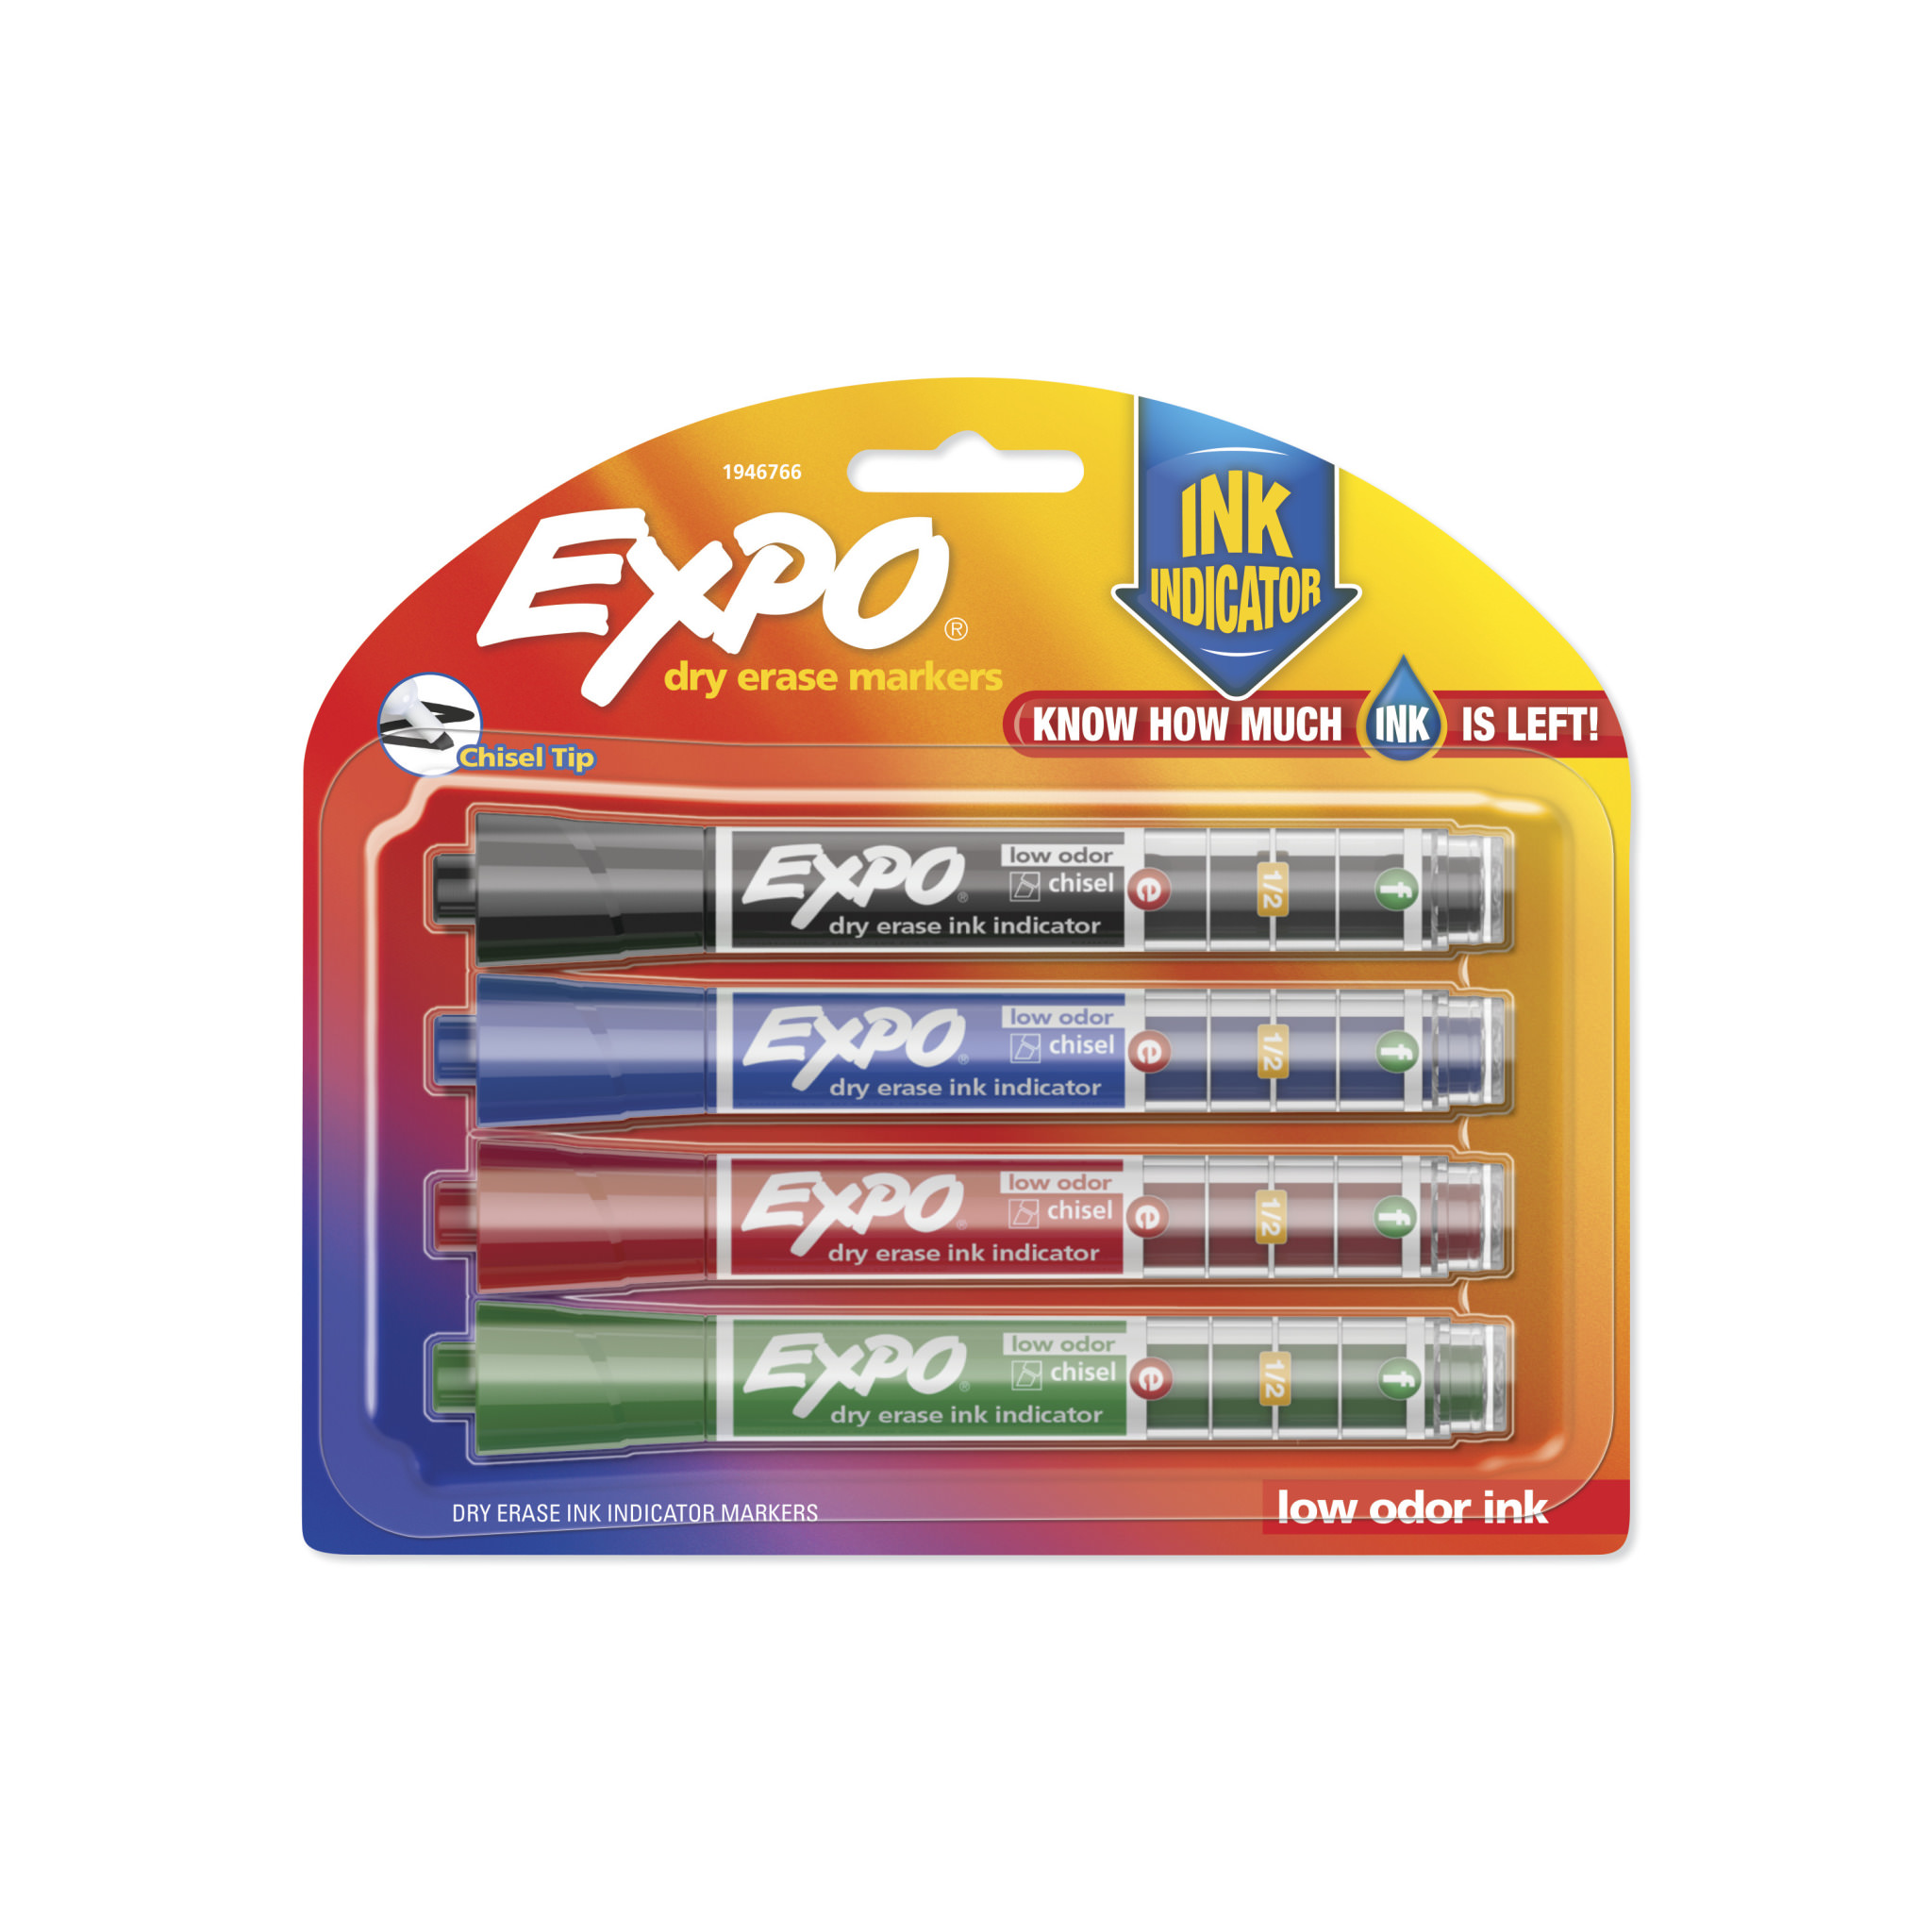 EXPO Dry Erase Markers with Ink Indicator, Chisel Tip, Assorted Colors, 4 Pack